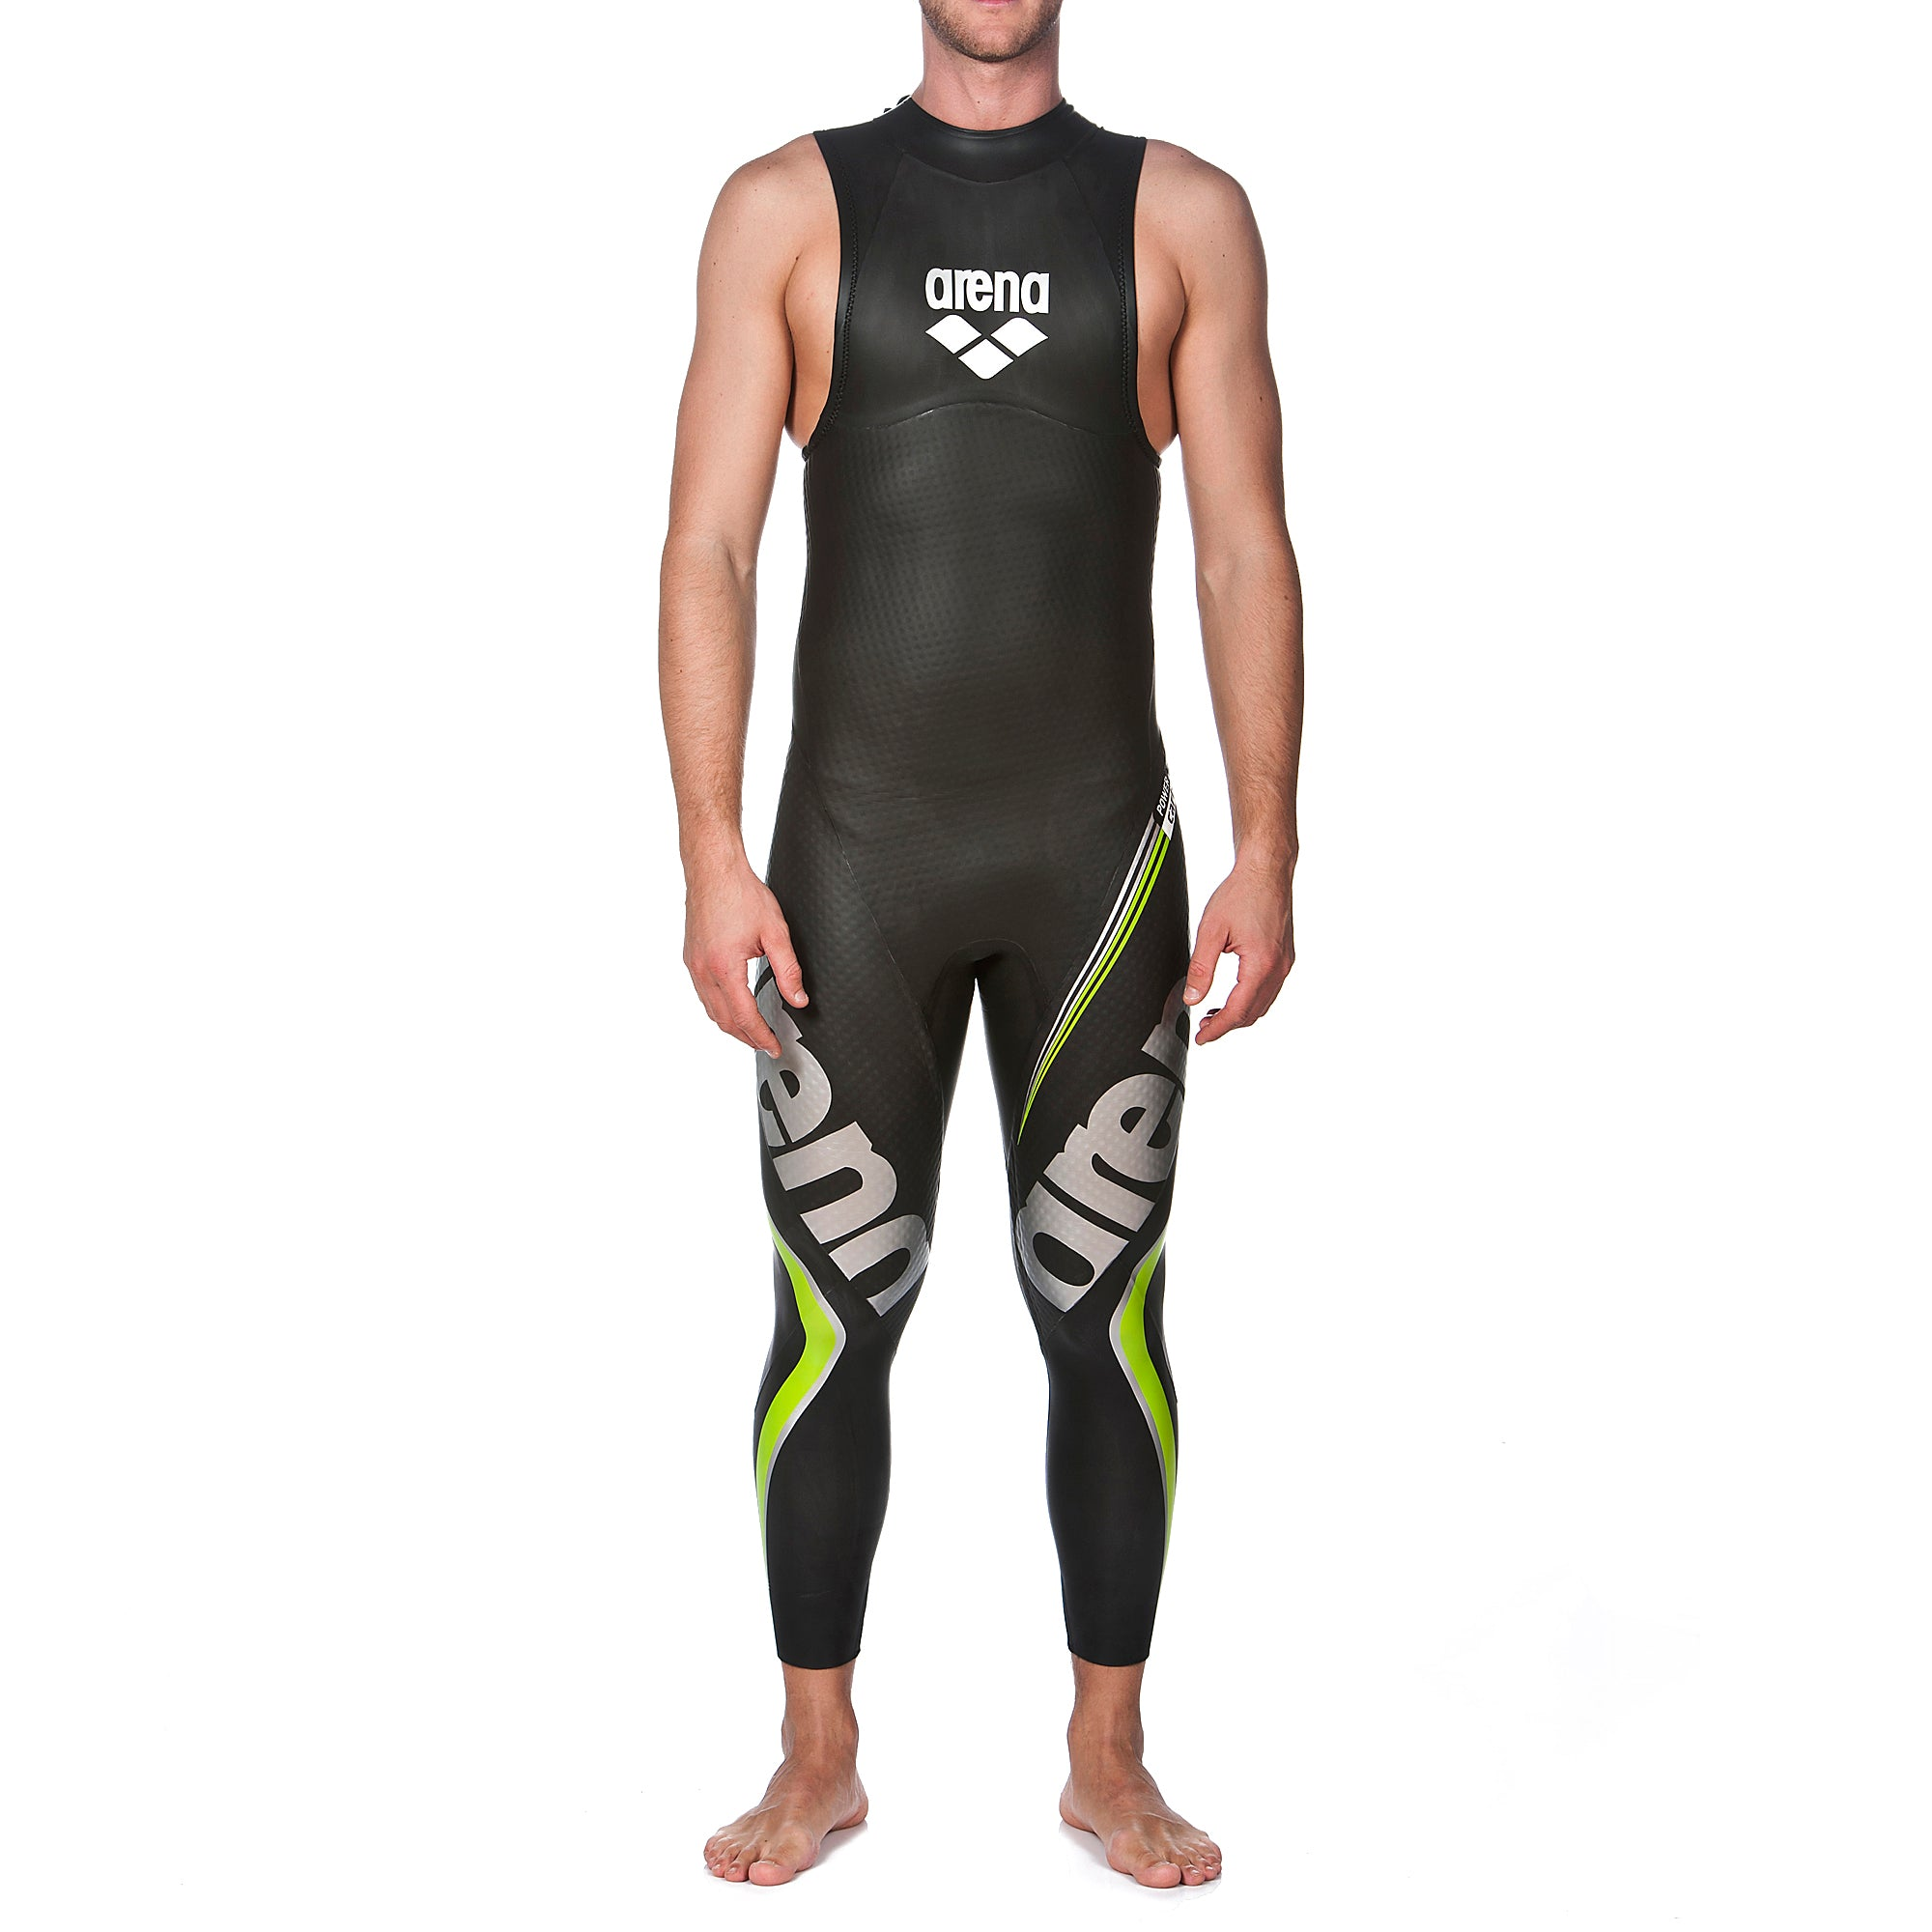 ARENA Man Trwetsuit CARBON SLEEVELESS 2A944